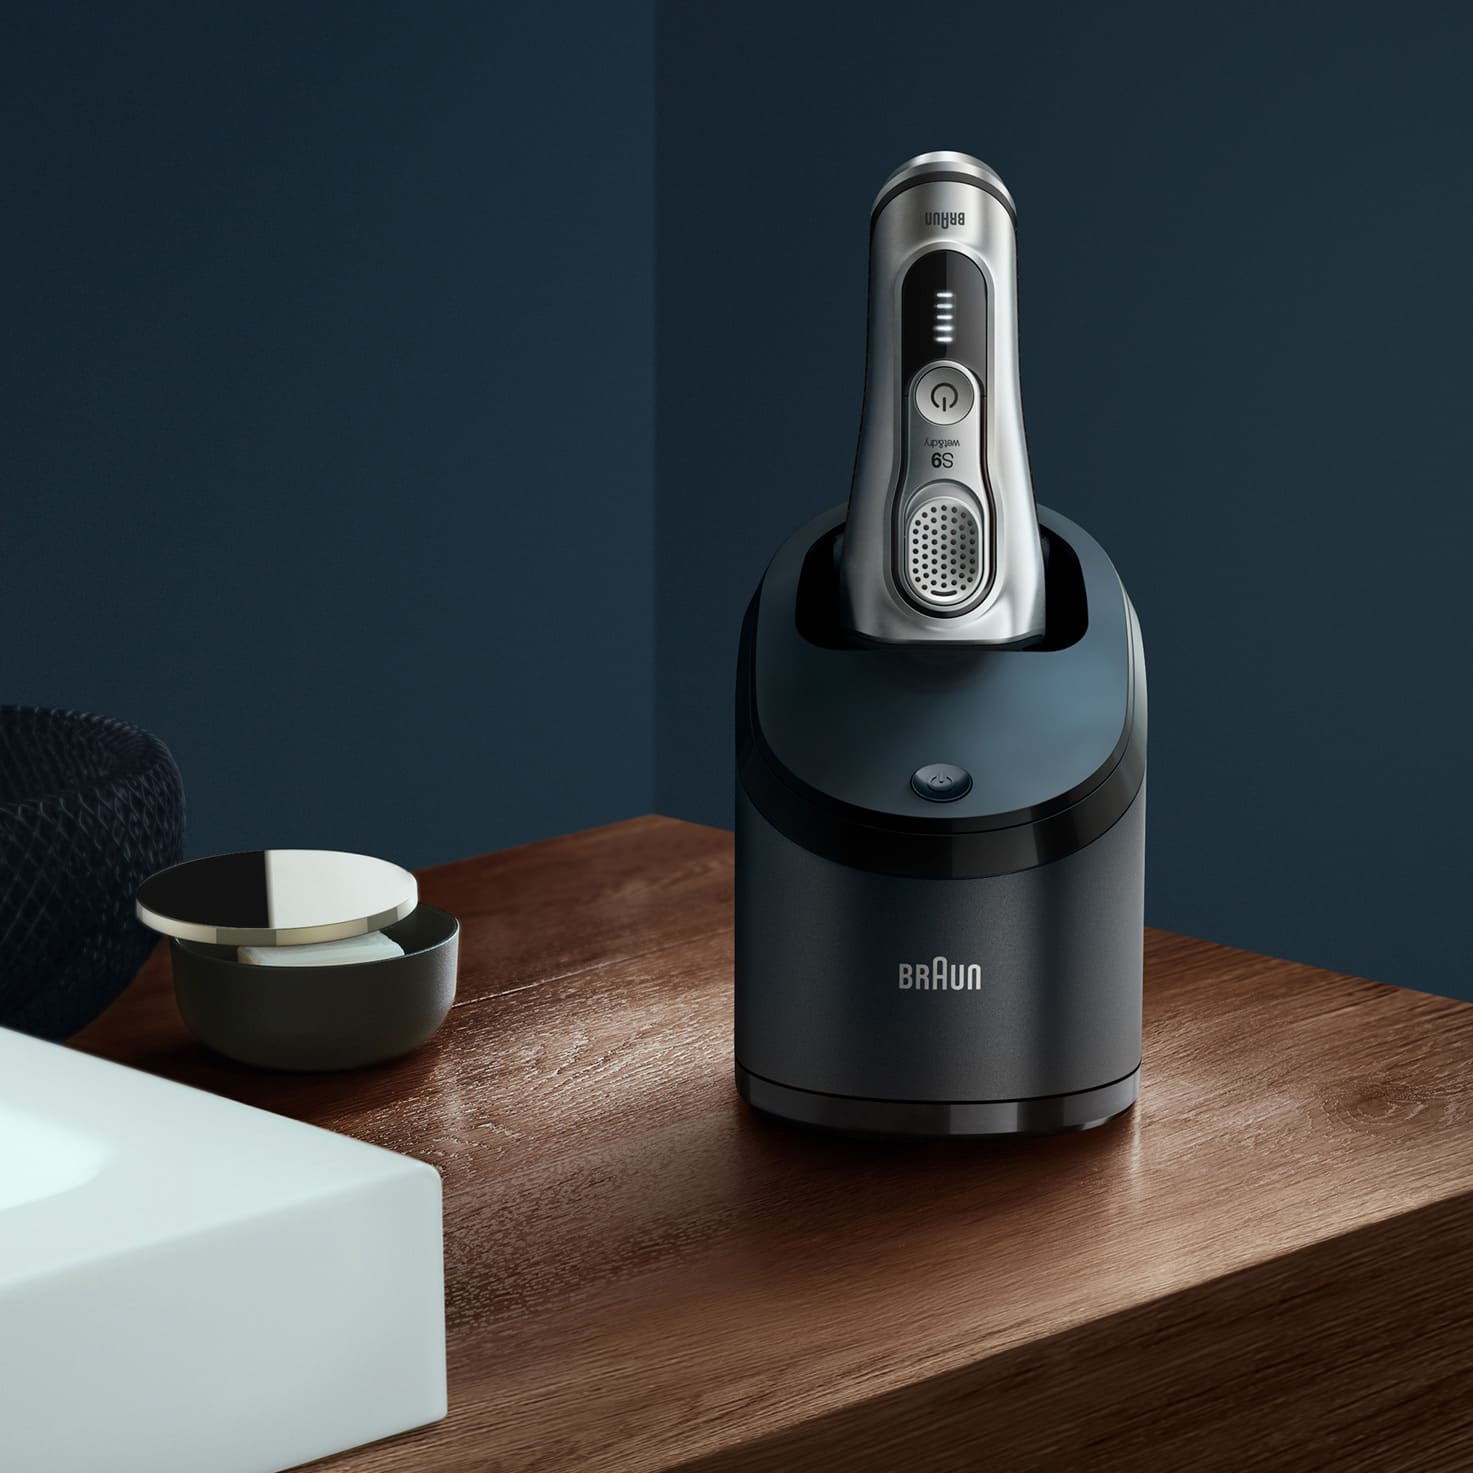 Series 9 9376cc shaver in Clean & Charge station